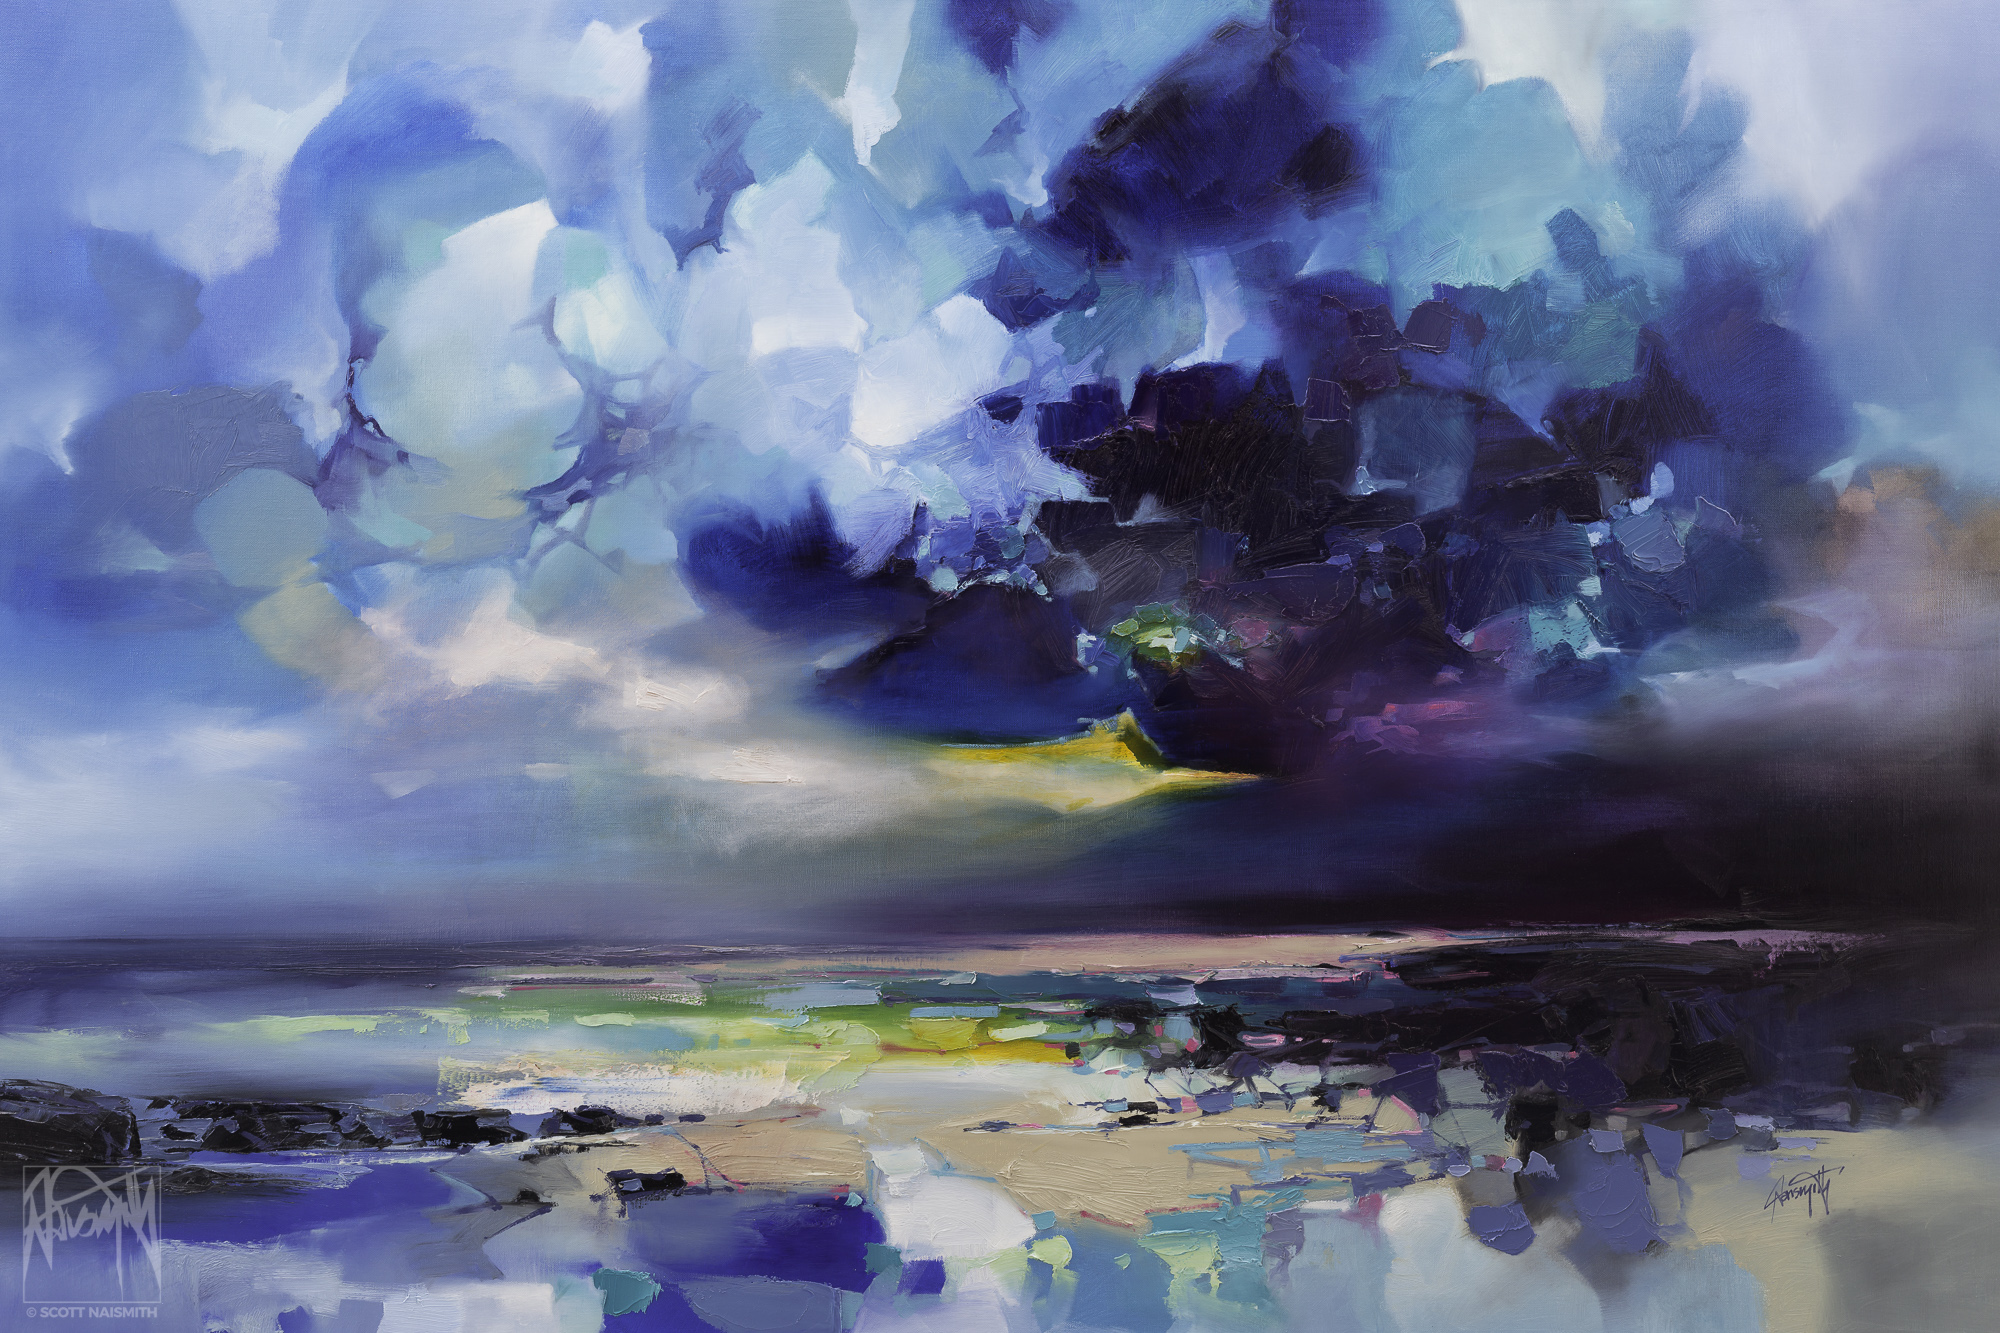 'Harris Fractals' by Scott Naismith